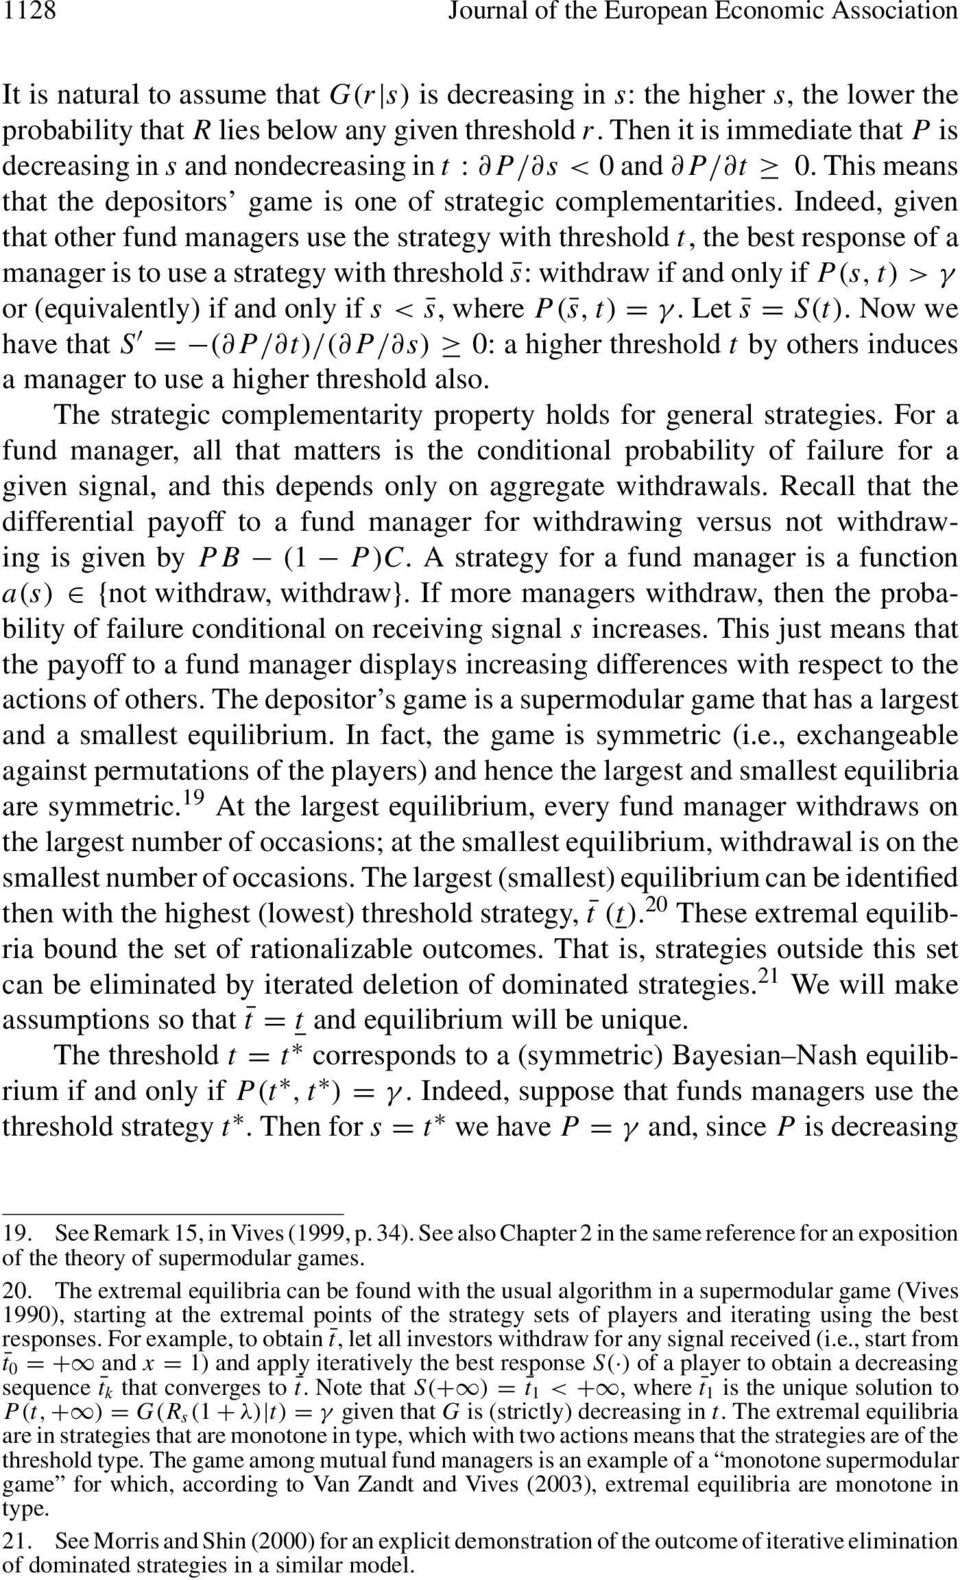 the strategy with threshold t, the best response of a manager is to use a strategy with threshold s: withdraw if and only if P(s,t)>γ or (equivalently) if and only if s< s, where P( s,t) = γ Let s =